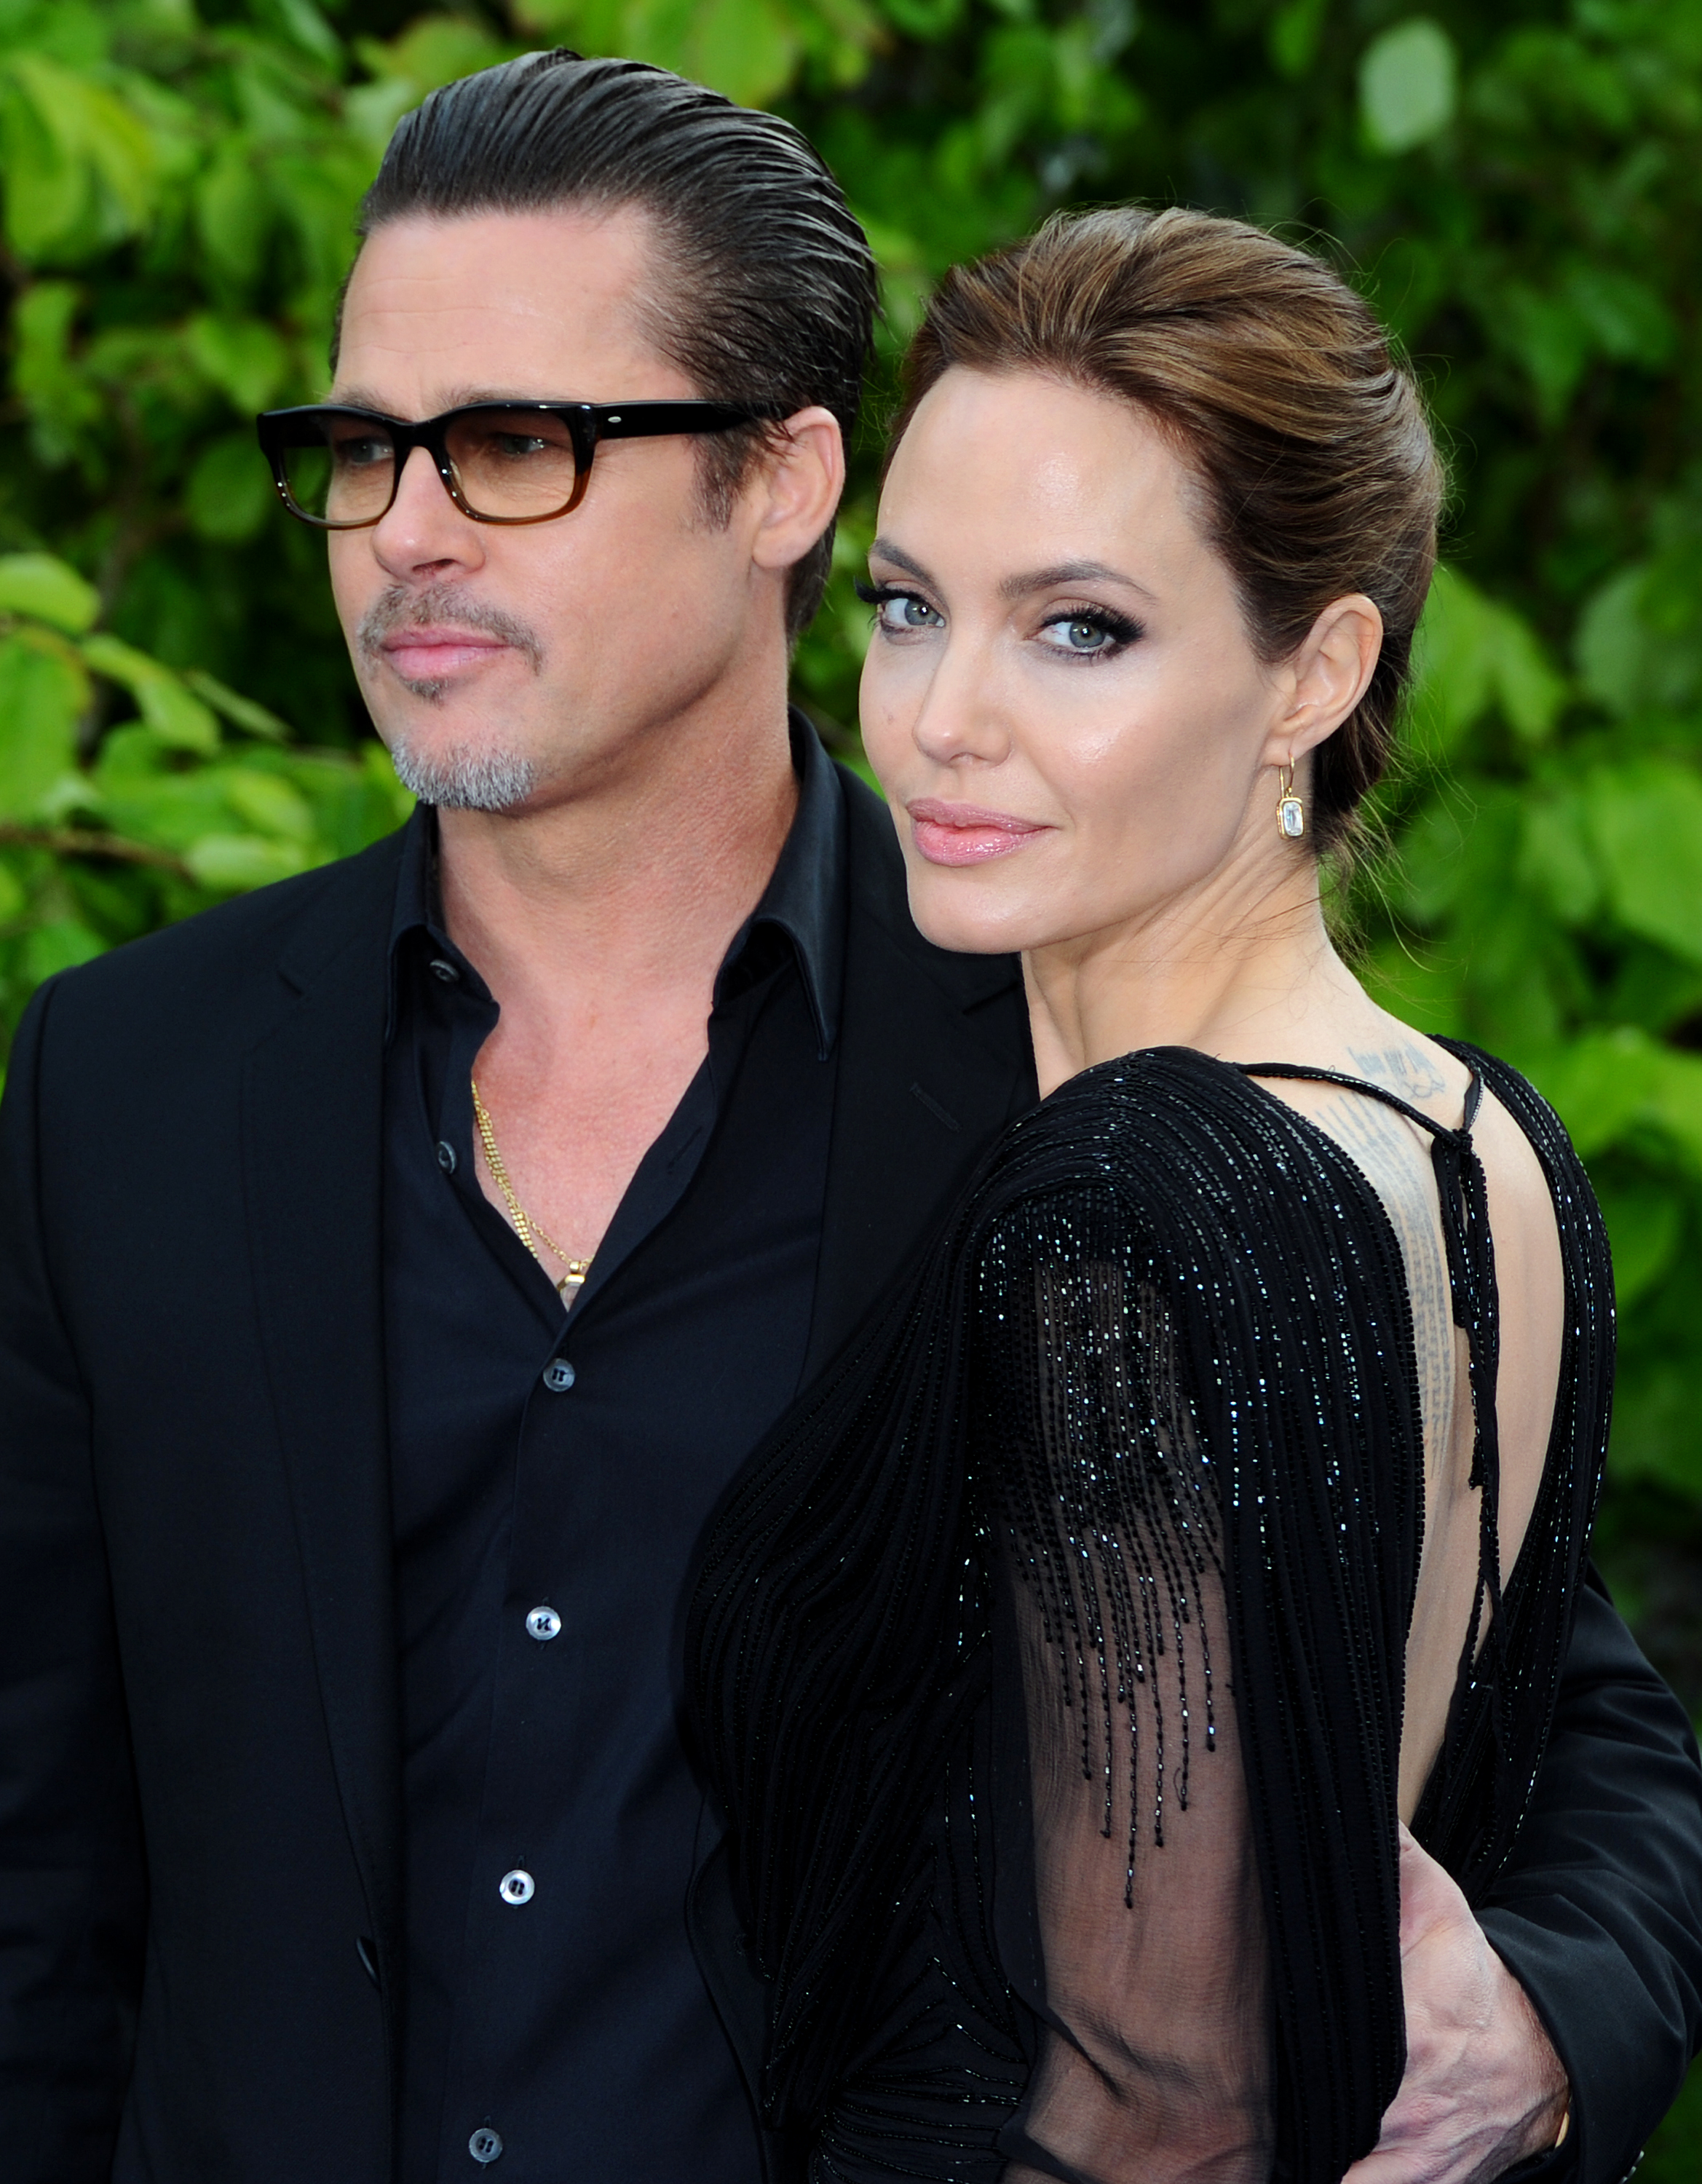 Brad Pitt and Angelina Jolie (Source: Getty Images)